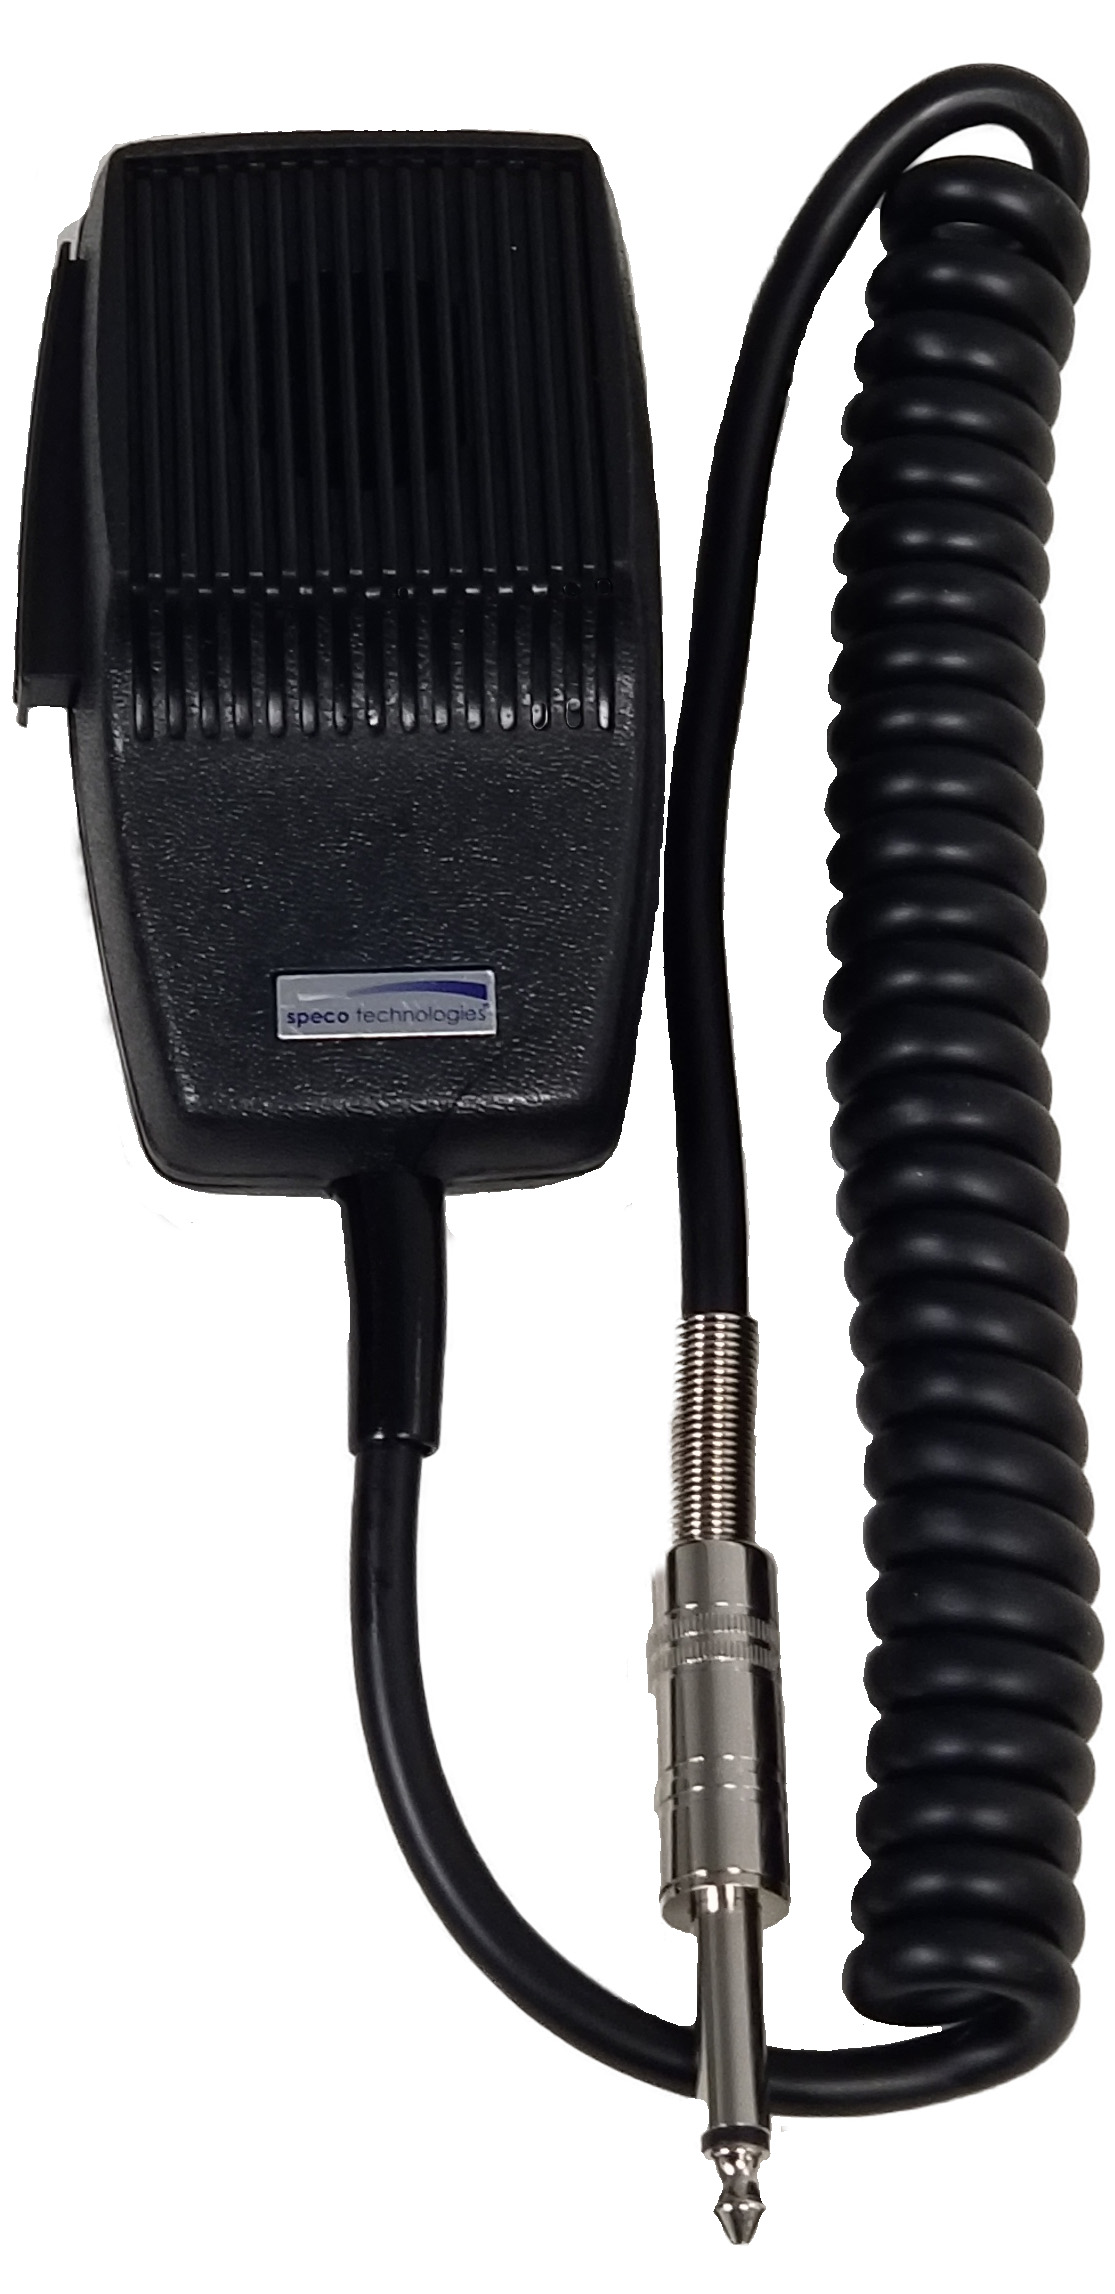 DM520P - Speco Microphone for PAT20 And PAT20TB